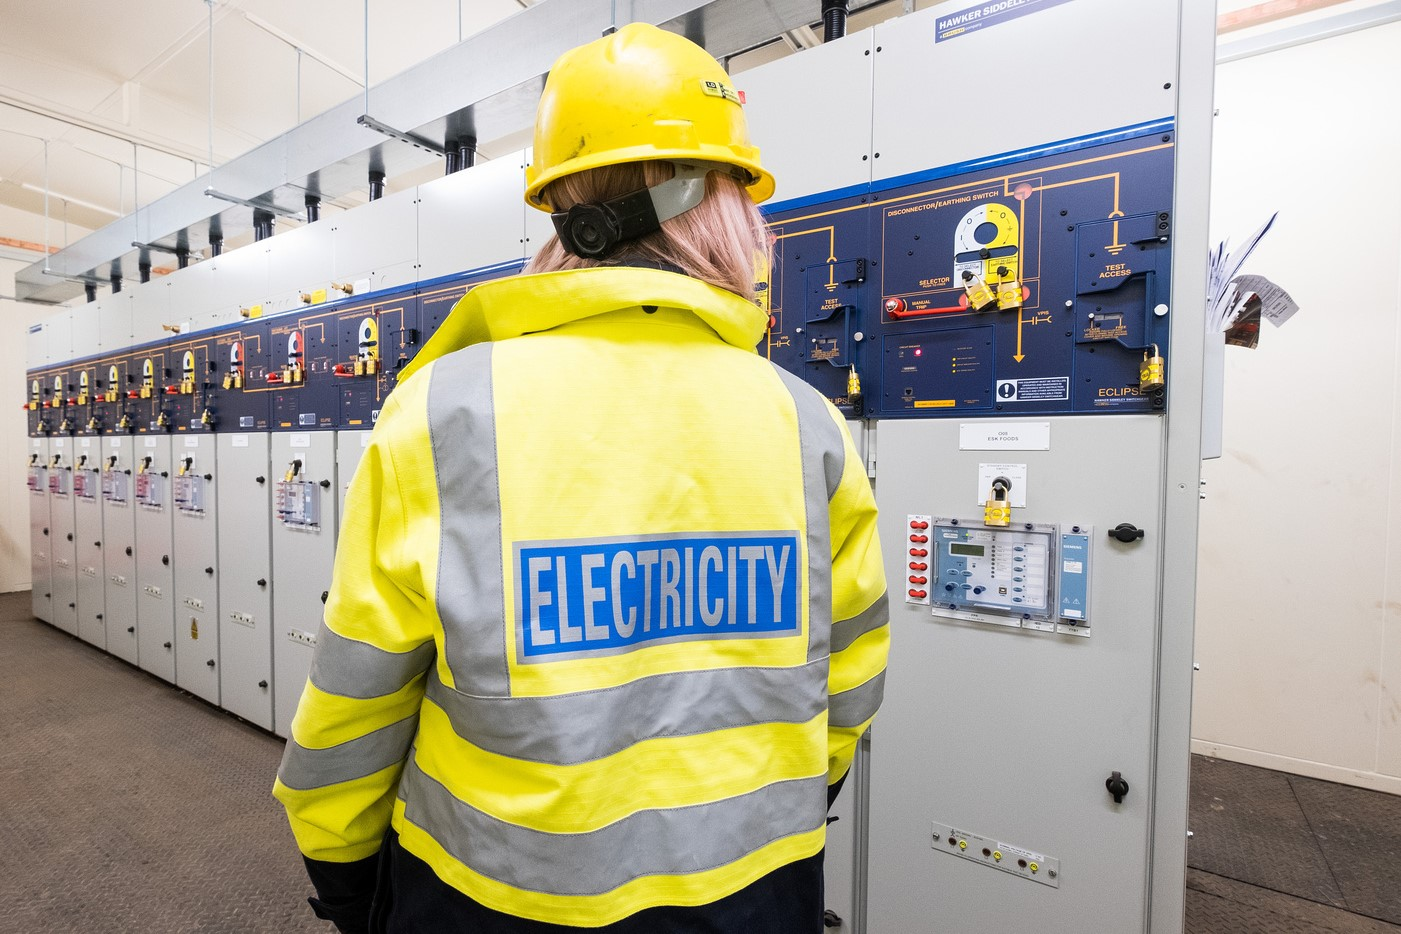 SSEN has given Aberdeenshire towns a £2.2m boost to their power network.